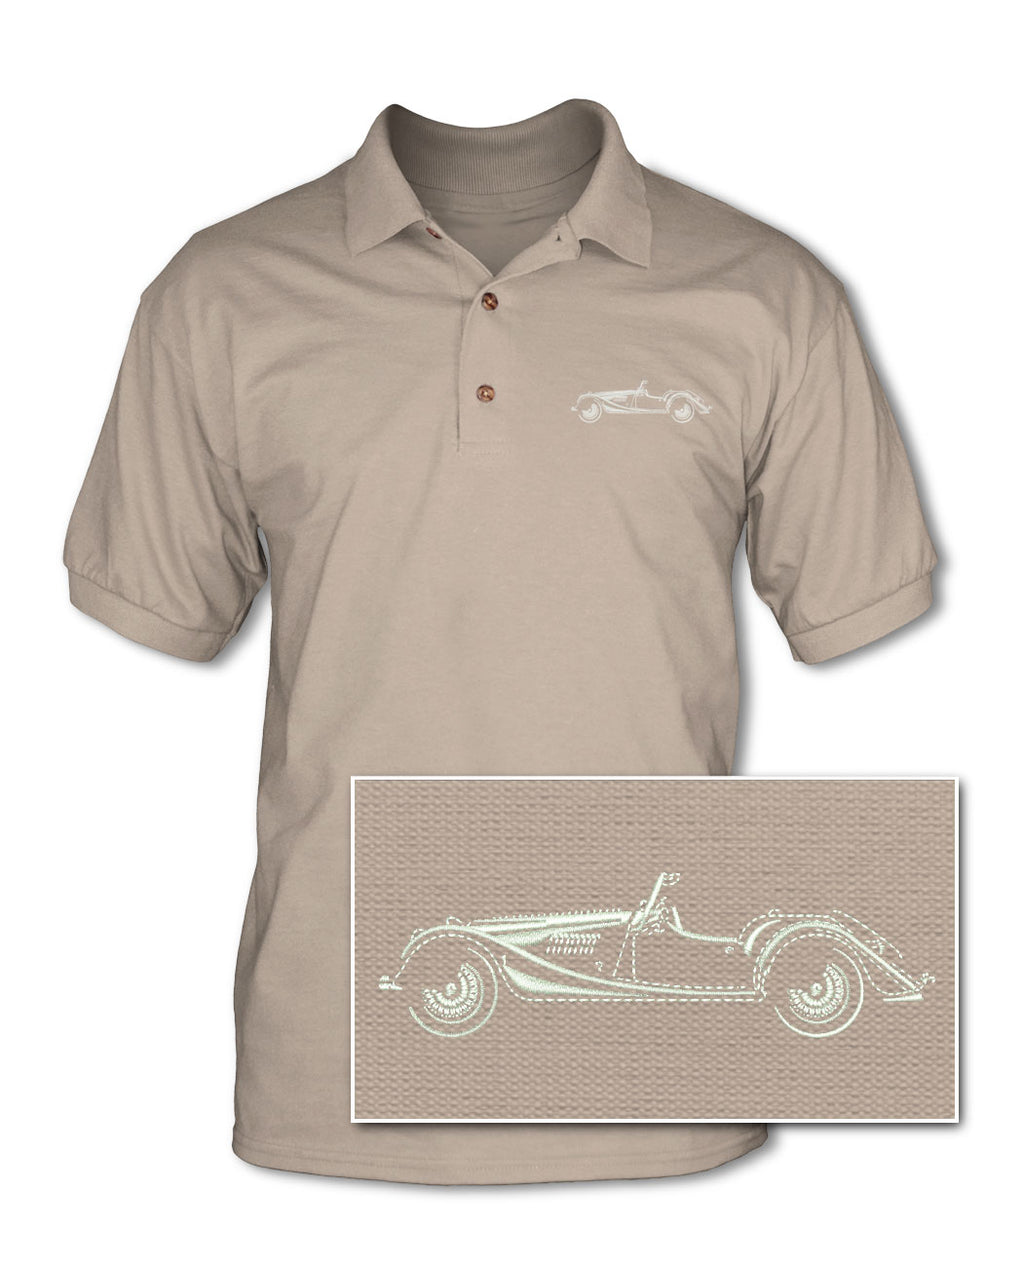 Morgan 4/4 Convertible Adult Pique Polo Shirt - Side View